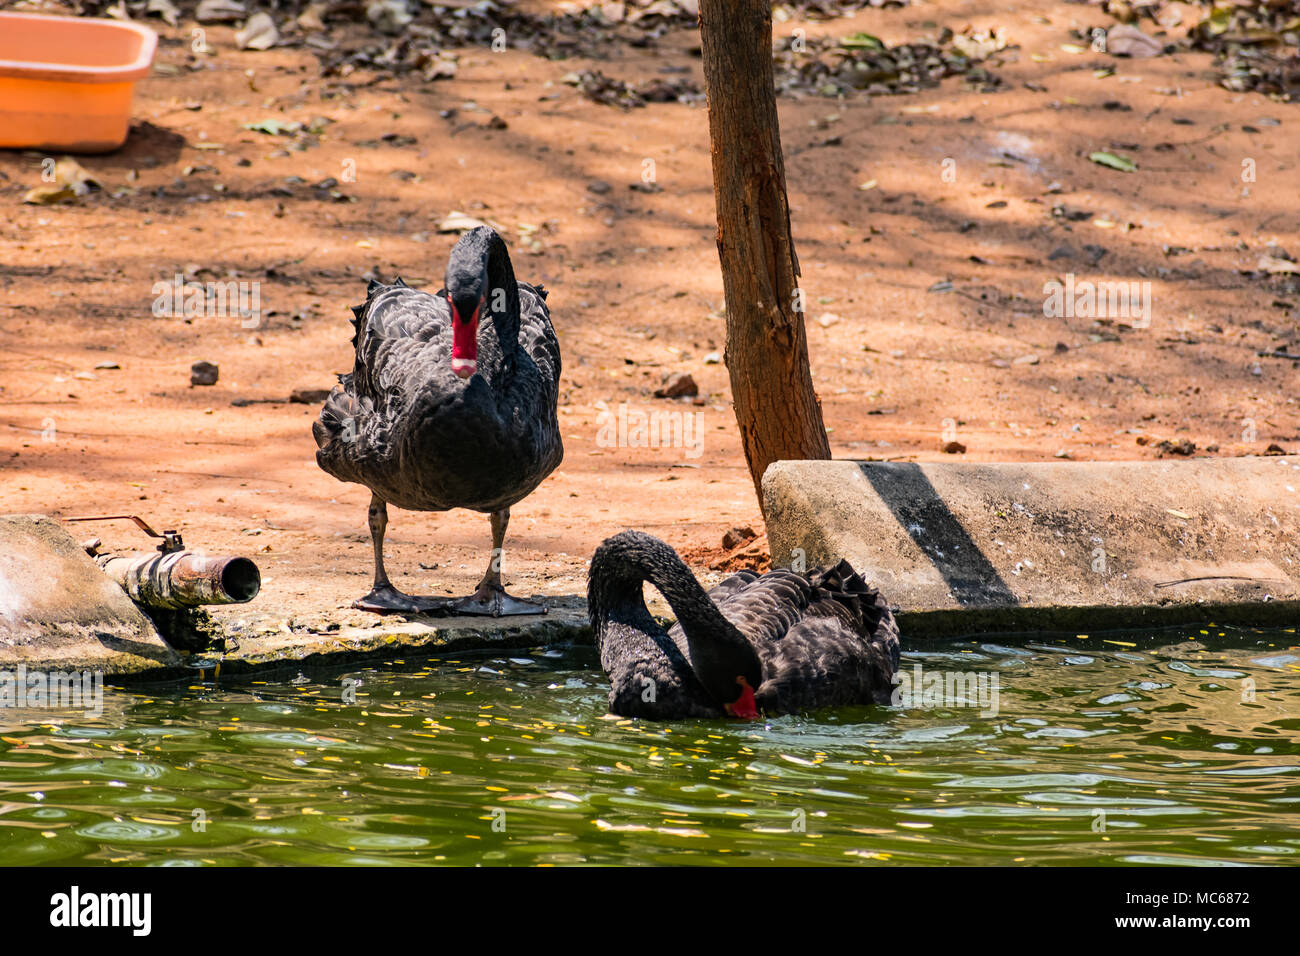 A black couple swan playing at water at zoo. Stock Photo